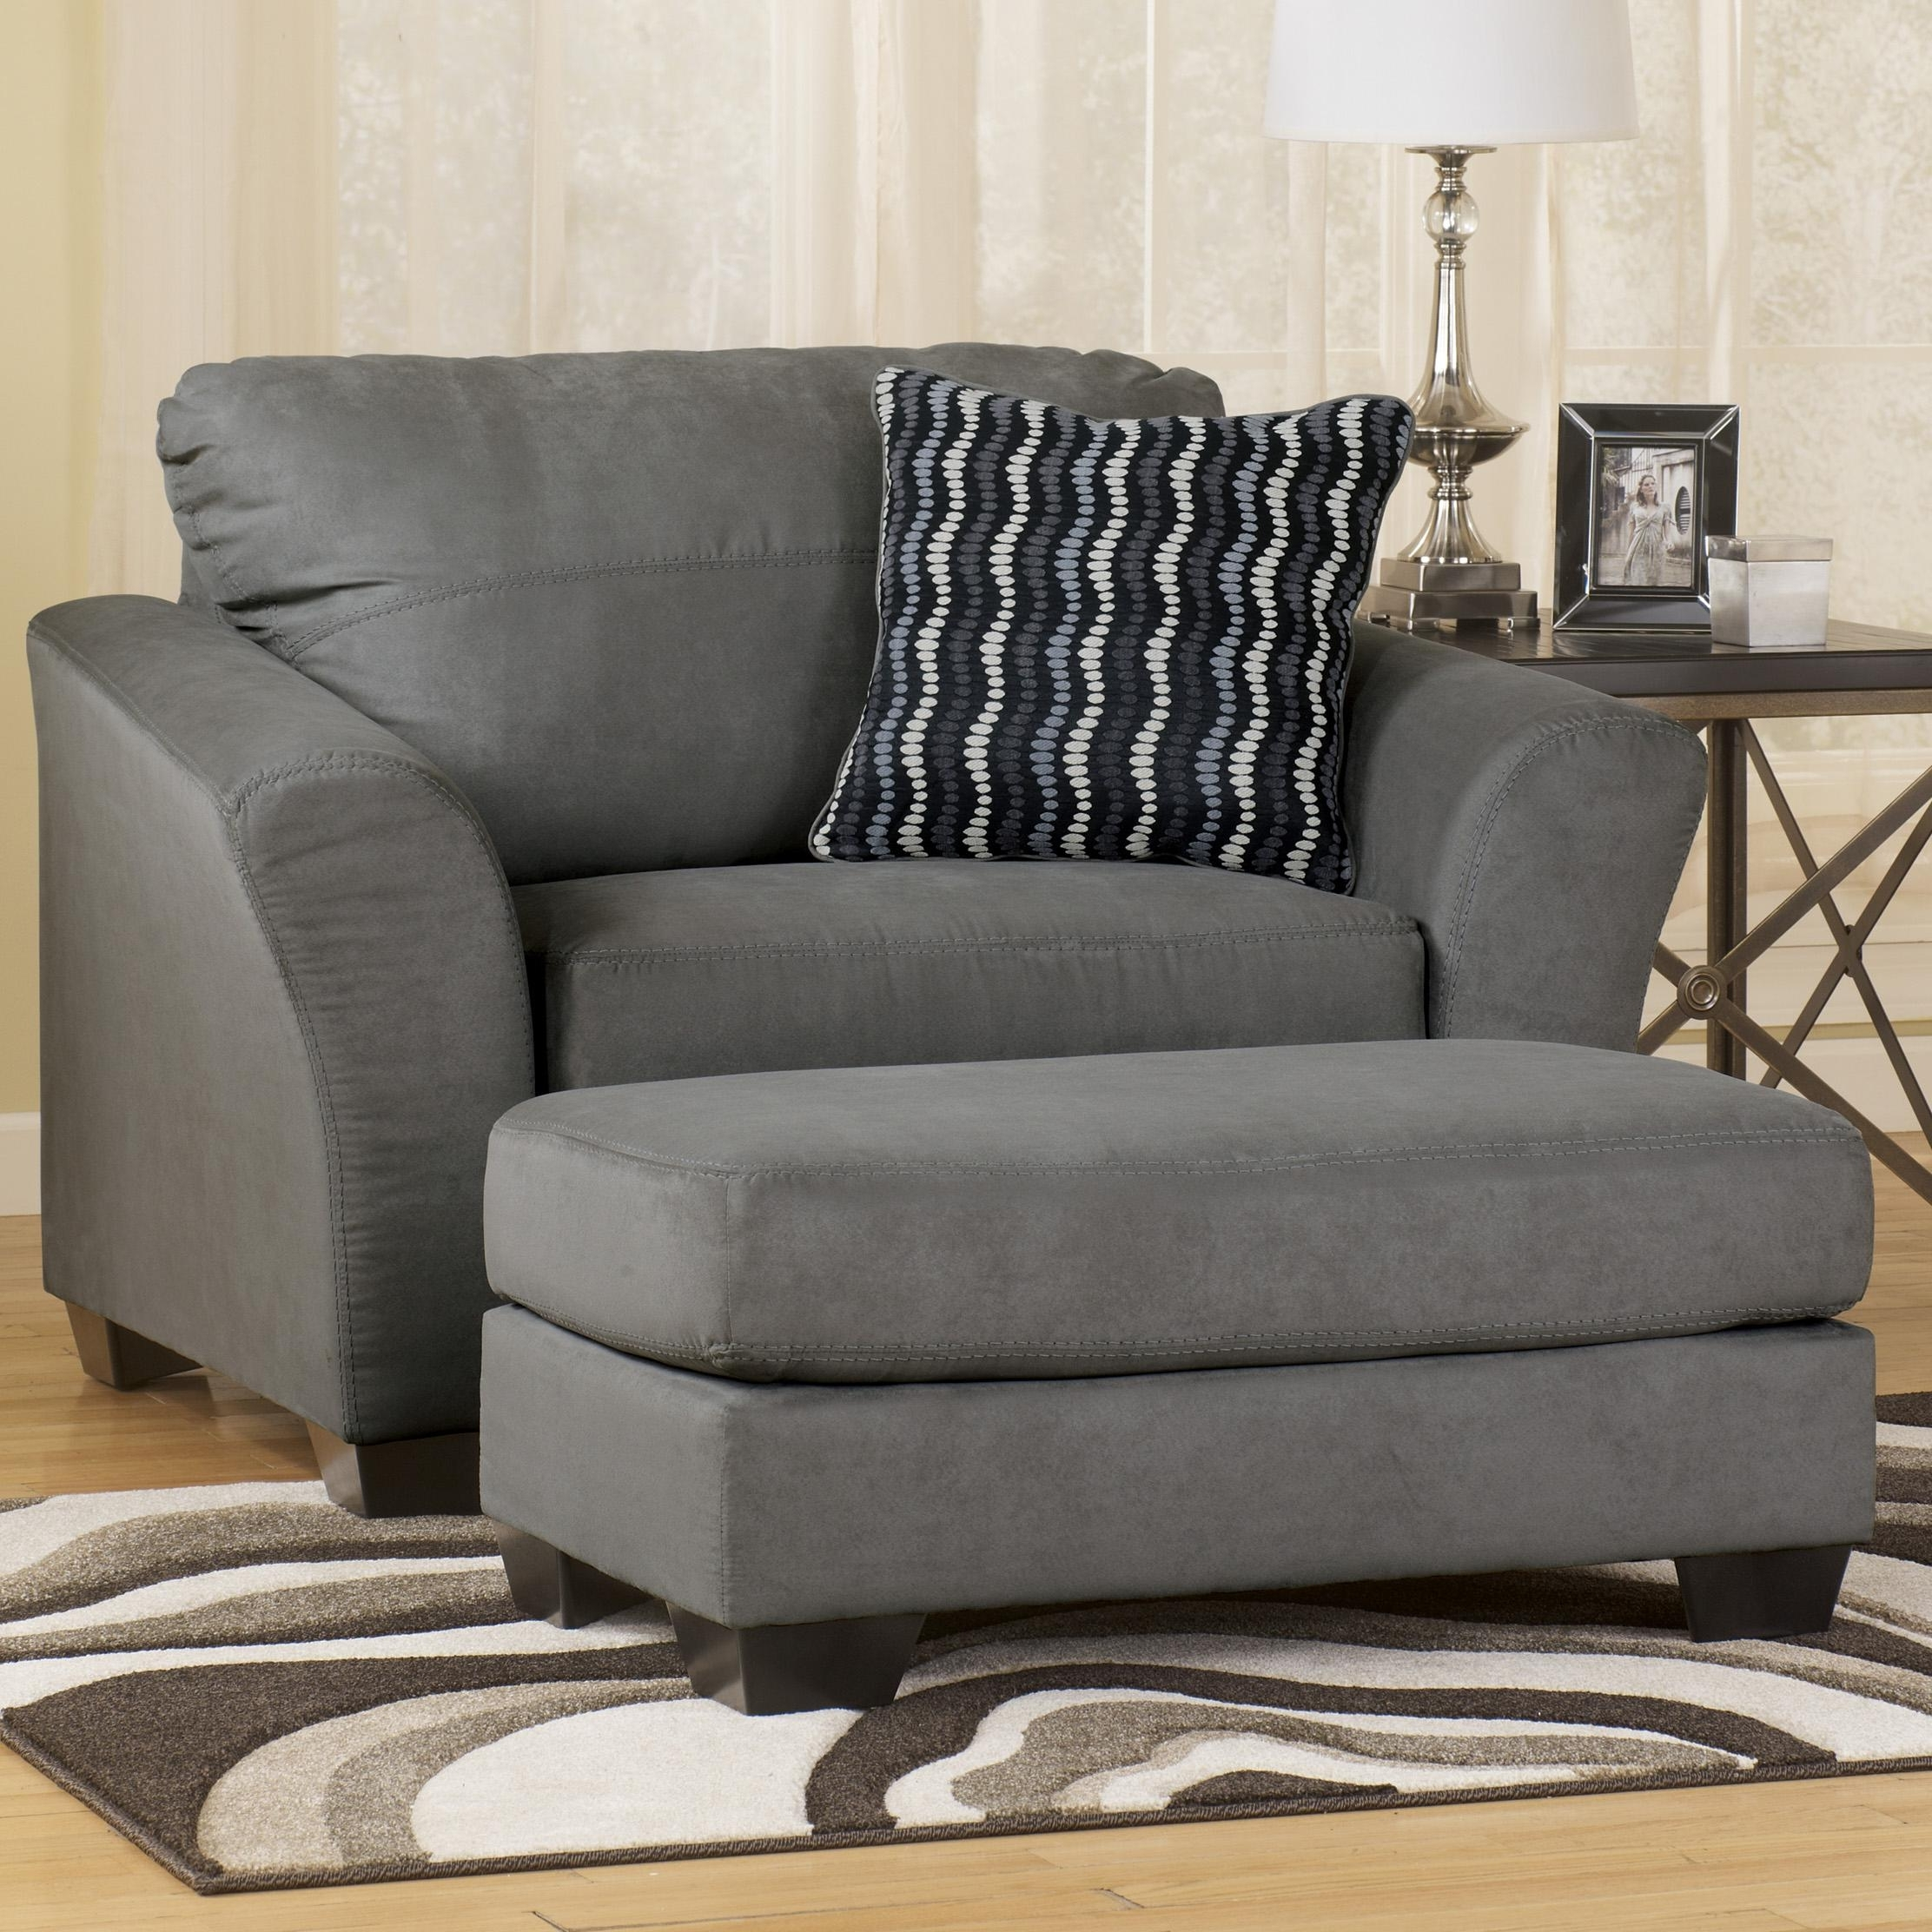 Signature Designashley Lexi – Cobblestone Contemporary Soft Inside Best And Newest Wide Sofa Chairs (View 9 of 20)